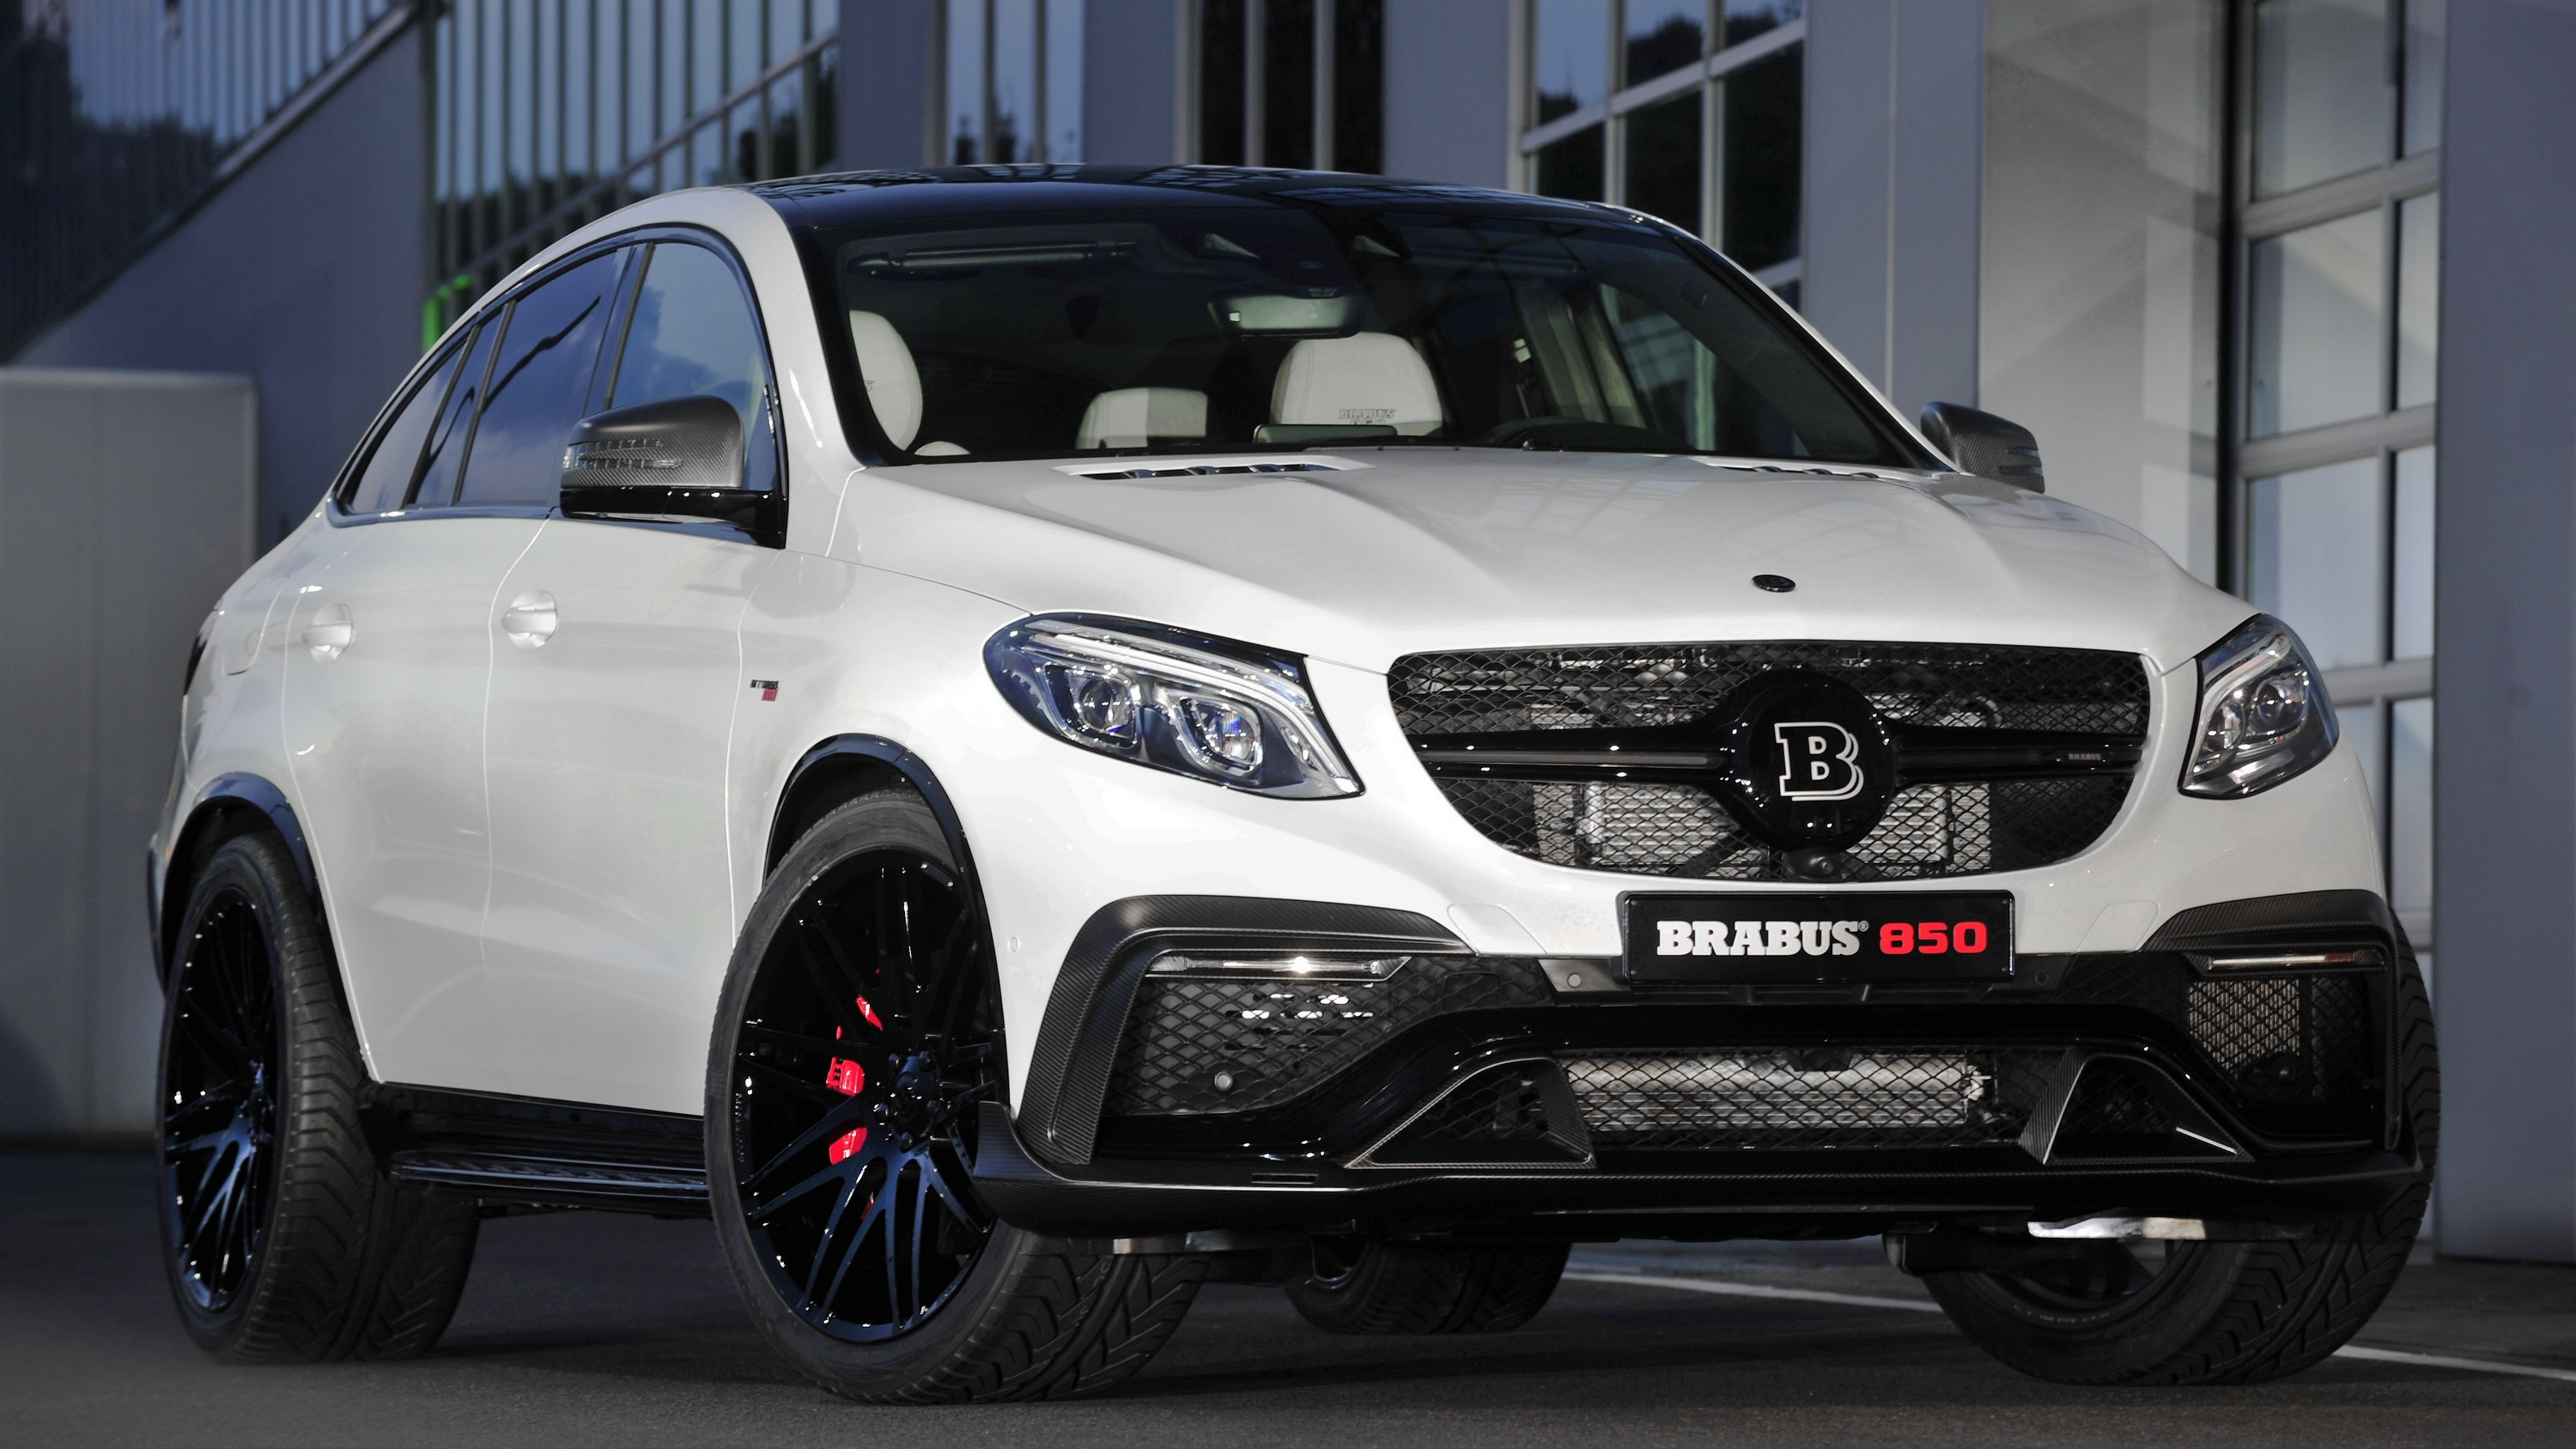 gl gle car deals wr global york mercedes new class view leasing benz suv rdgallery inventory auto lease goe